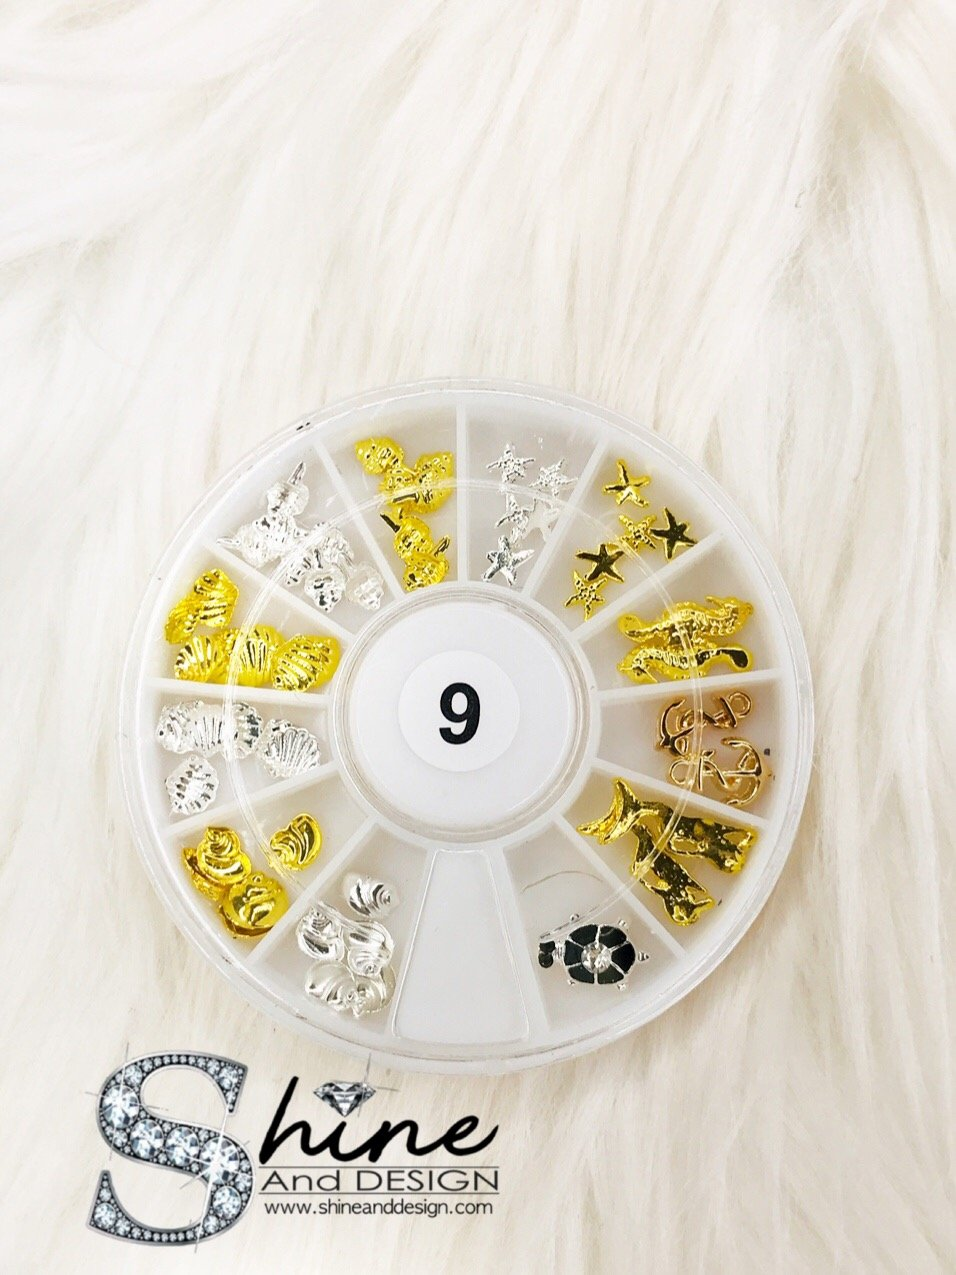 SHINE Mix Charms with Crystals - Fancy Collection Set #9